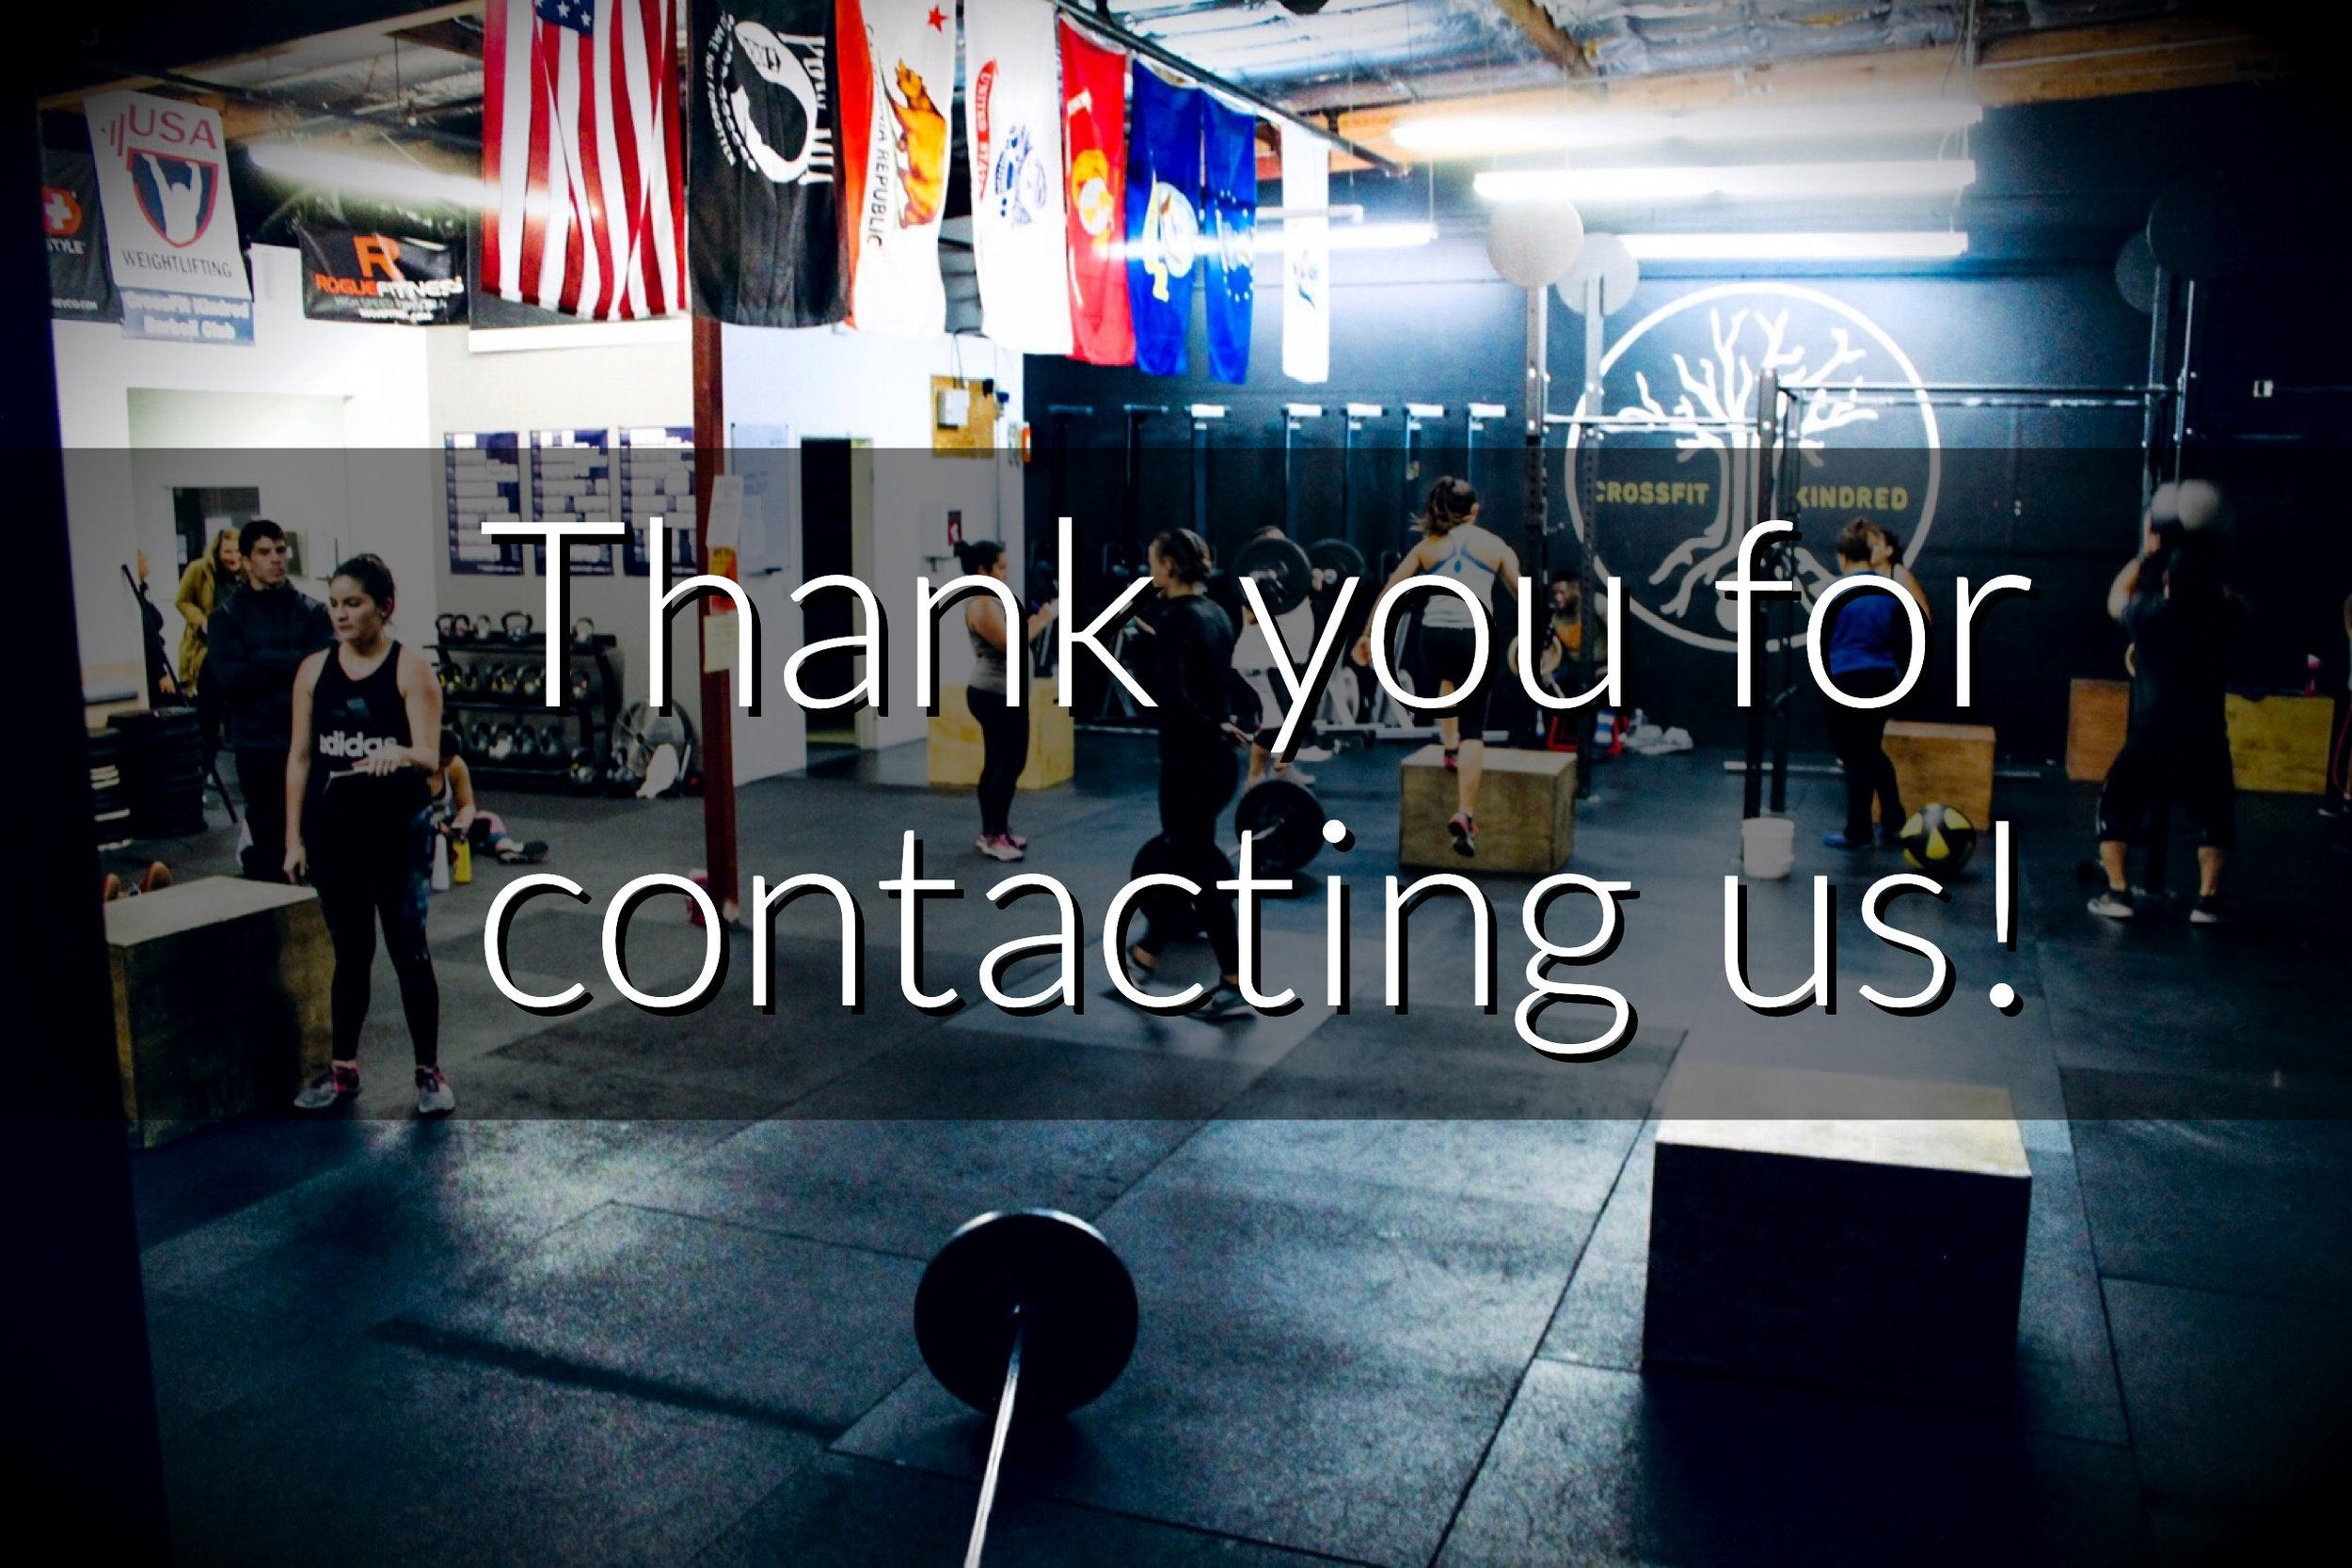 We received your message. - Our staff will be contacting you soon. Thank you!